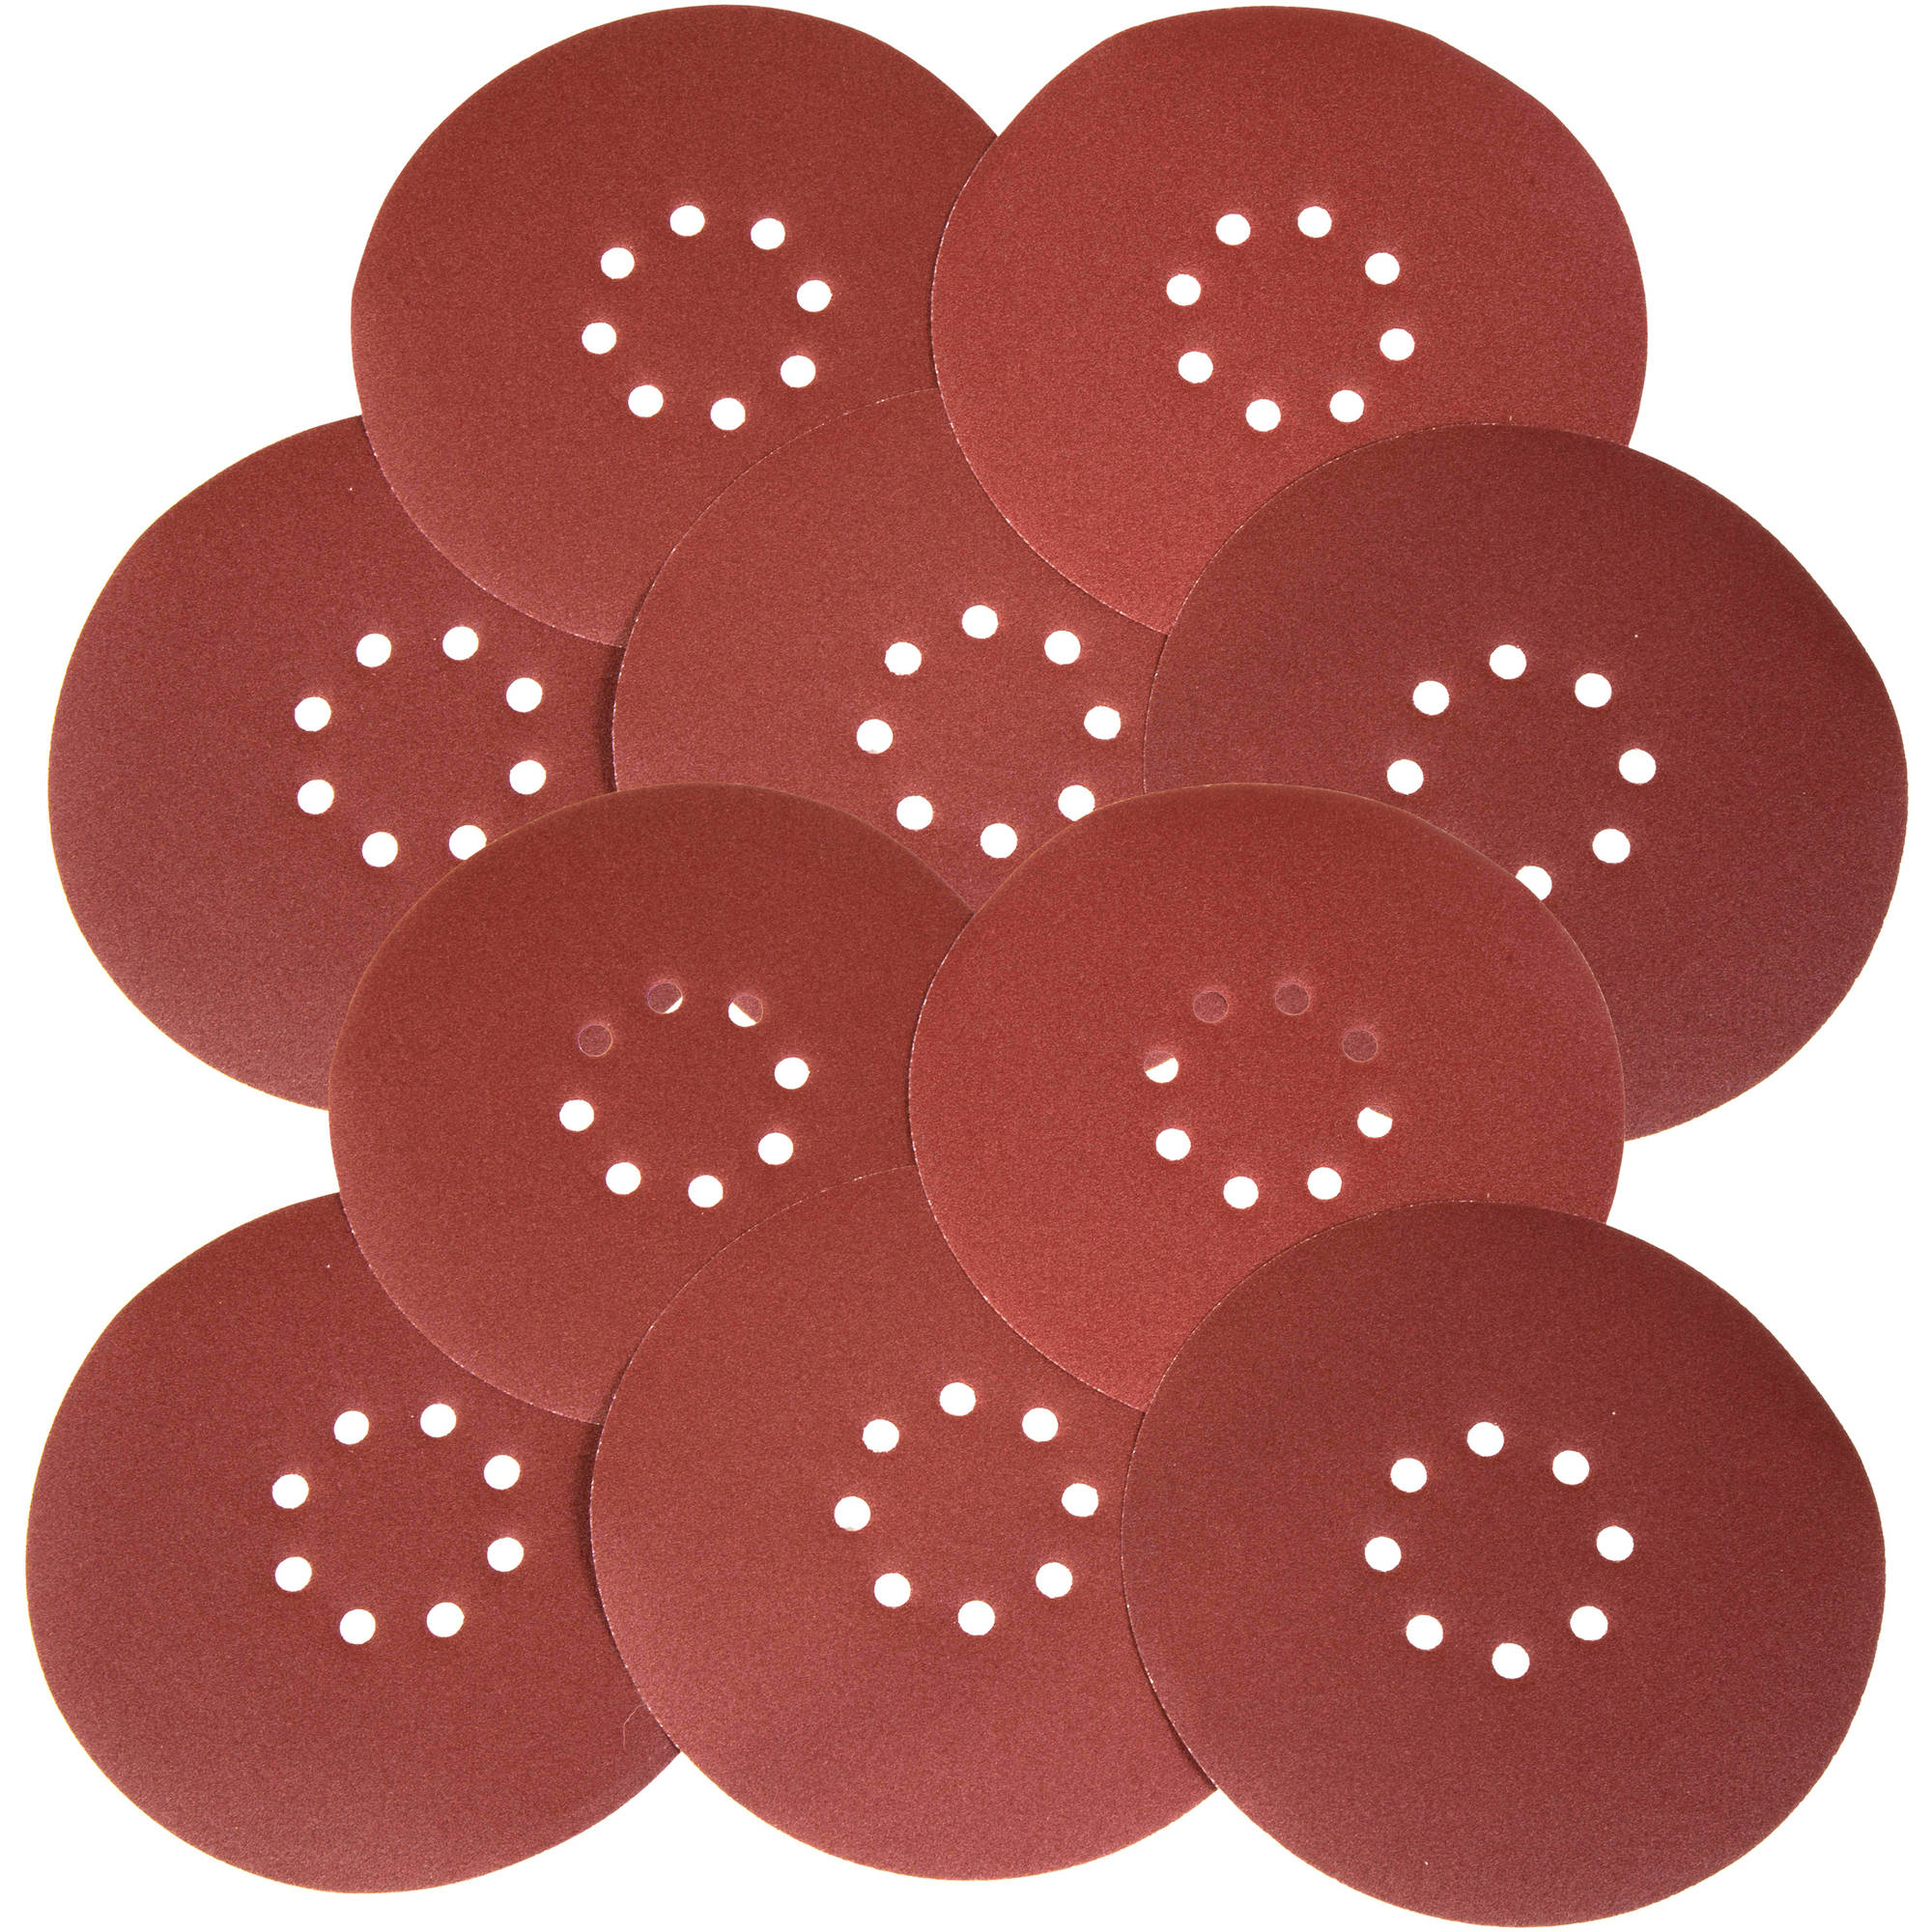 "WEN Drywall Sander 240-Grit Hook and Loop 9"" Sandpaper, 10-Pack"